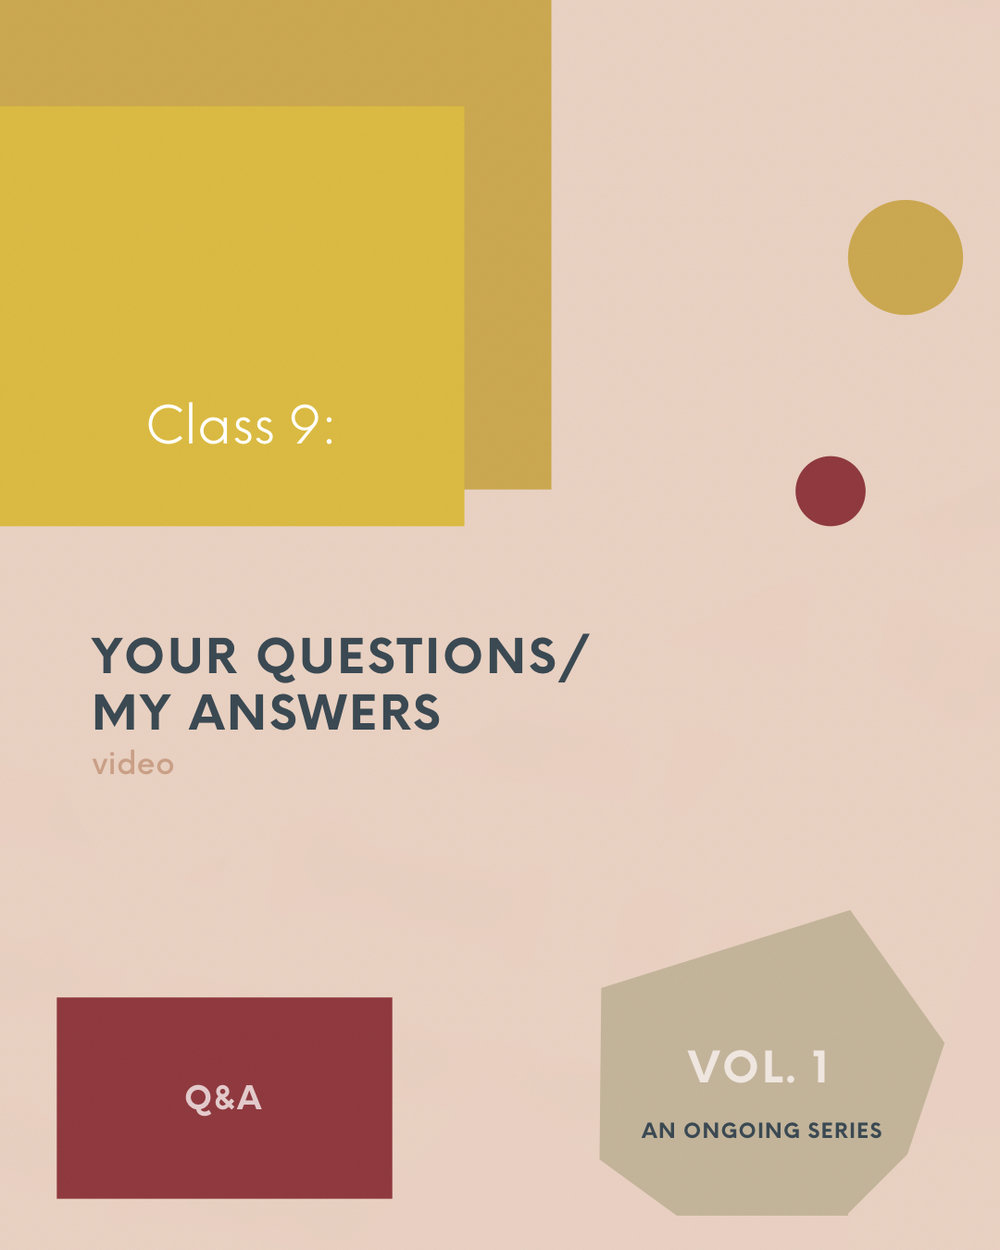 Class No. 9 Your Questions/MyAnswers | Vol. 1 - Q&ABy popular demand we're doing a Q&A!Whoop! Whoop!You asked, and it's my honor to oblige. I'm looking forward to answering your questions.Let's get as real, raw, and open as you all wanna get! Ask whatever you'd like guidance, advice, or tips on.Share what's on your heart, spirit, and mind.This will be a free-structured class on video.